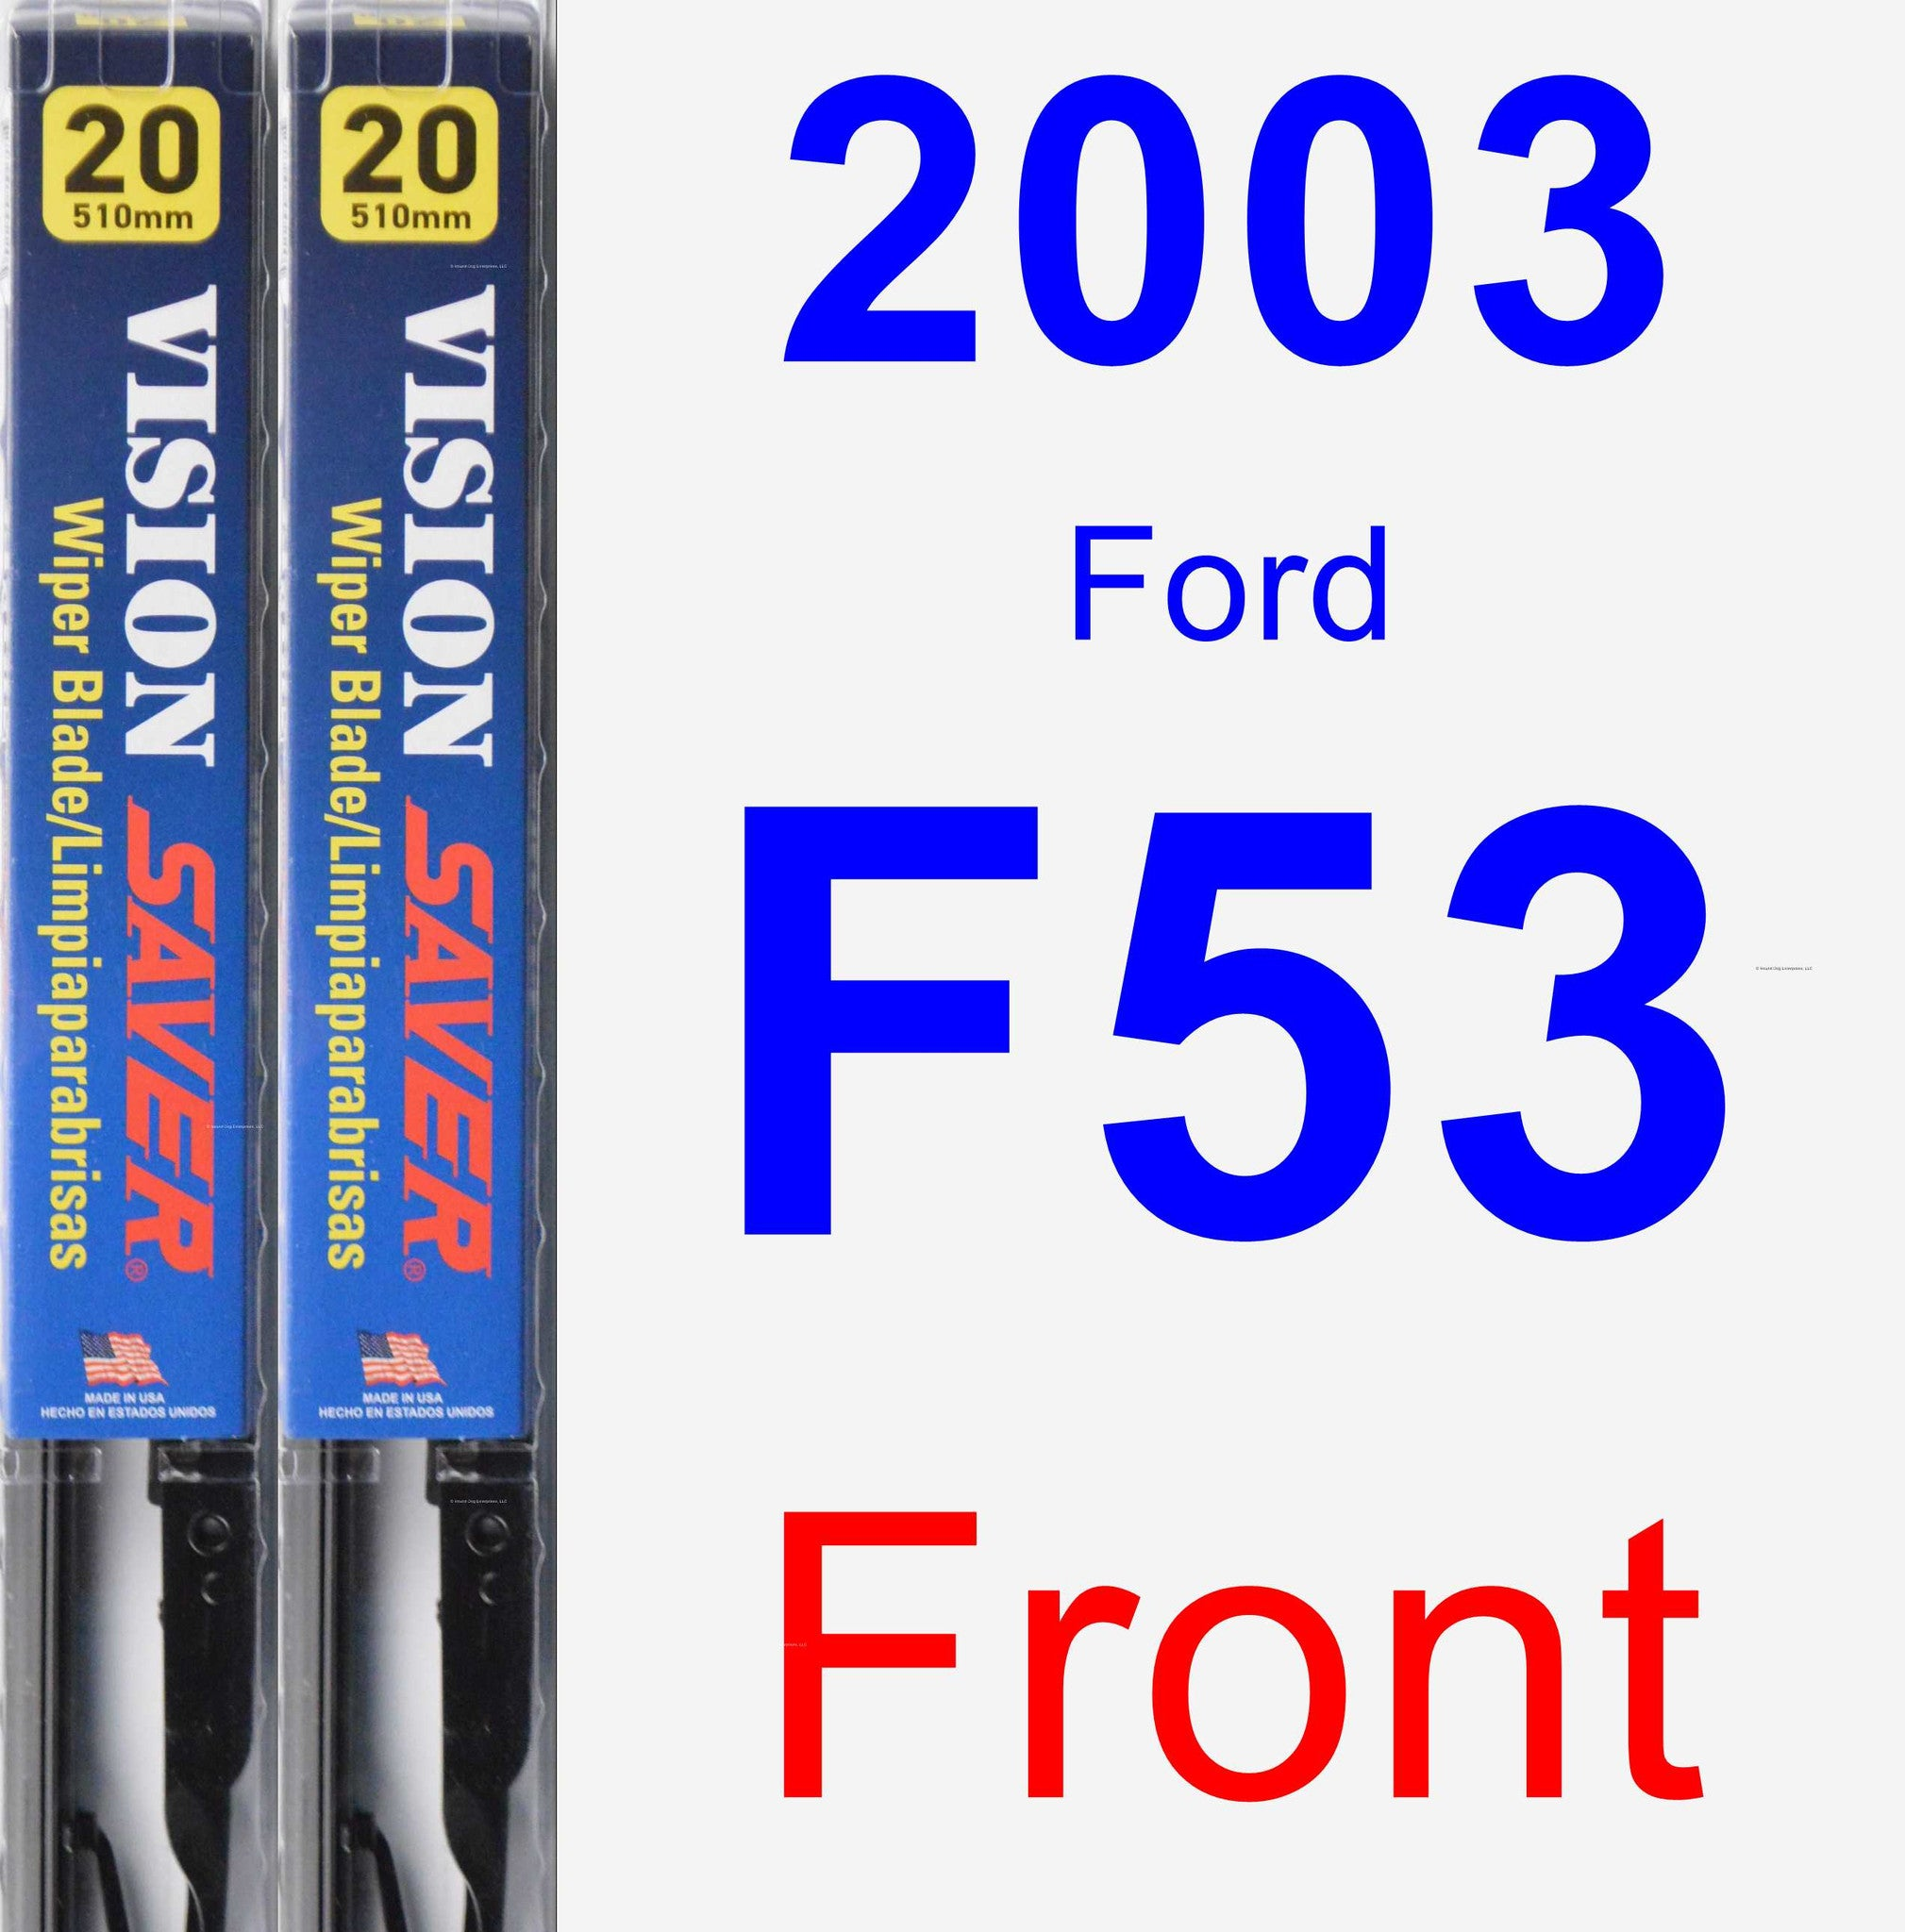 Front Wiper Blade Pack for 2003 Ford F53 - Vision Saver